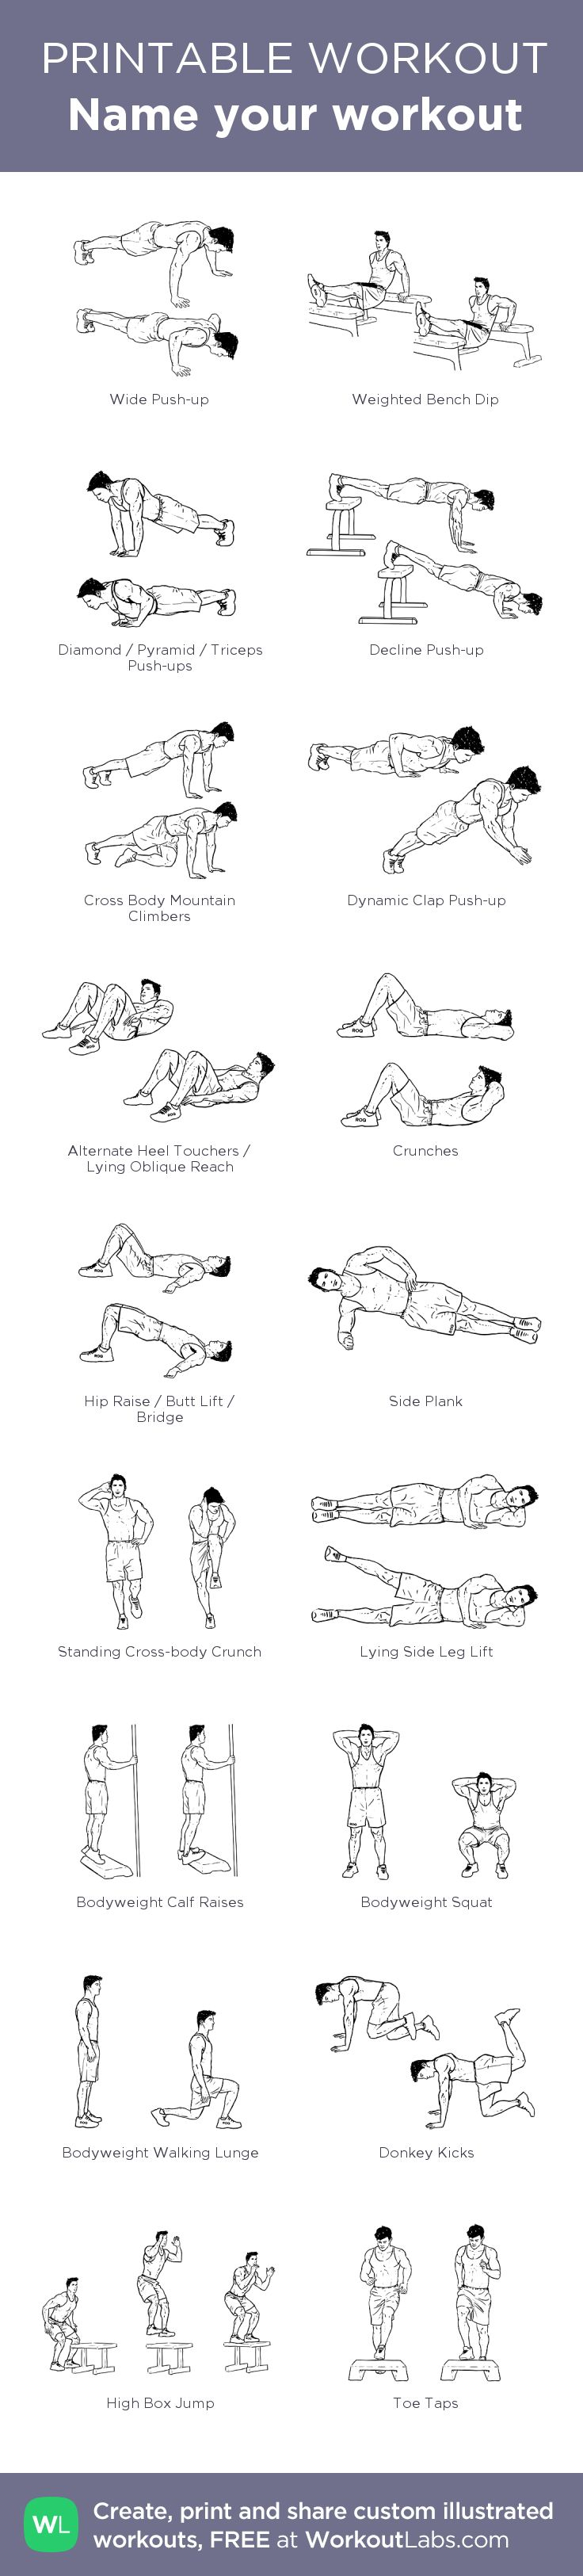 Name your workout: my visual workout created at WorkoutLabs.com • Click through to customize and download as a FREE PDF! #customworkout